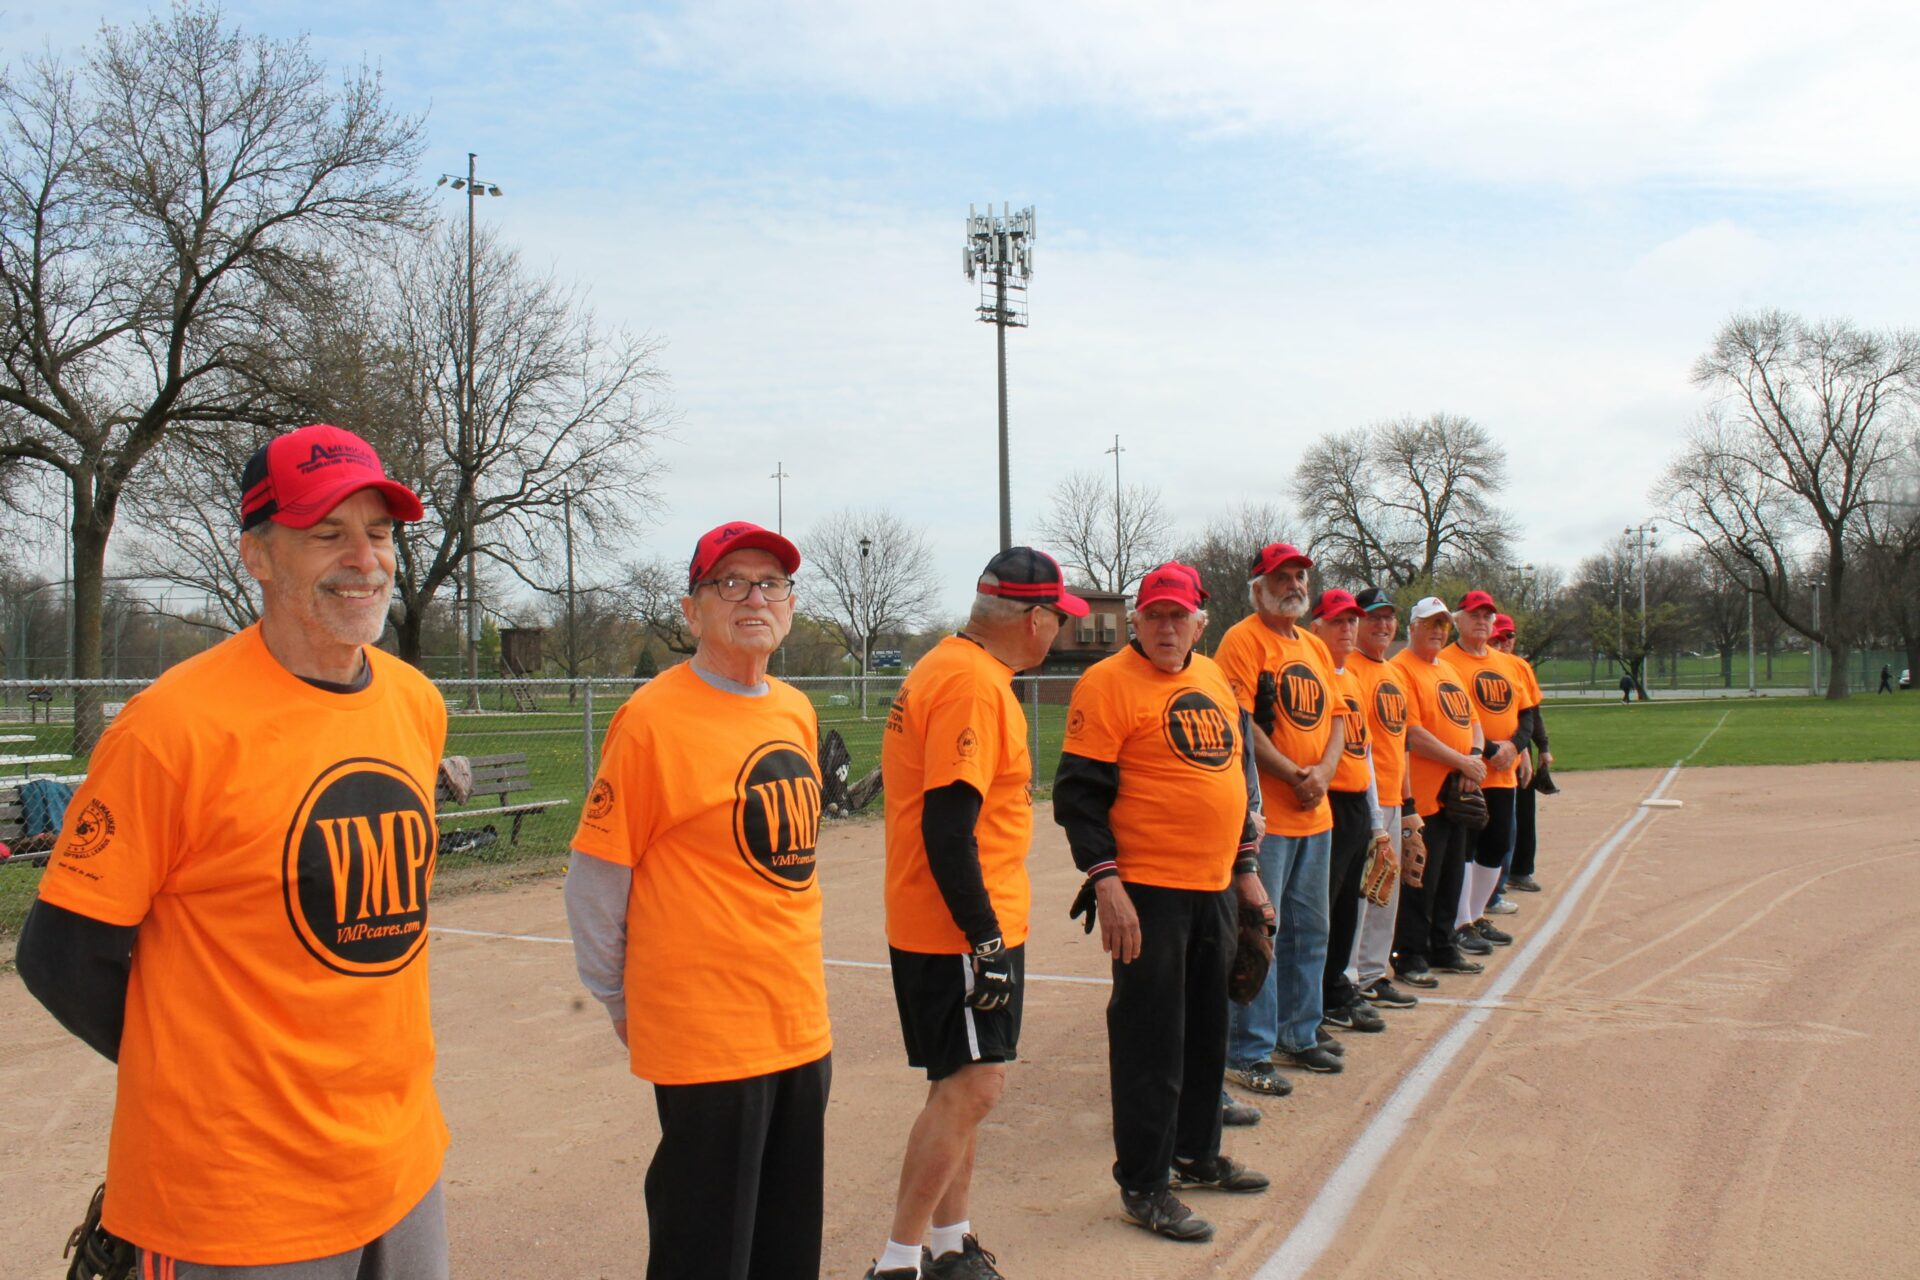 Senior baseball league in West Allis Wisconsin sponsored by VMP Healthcare and Community Living